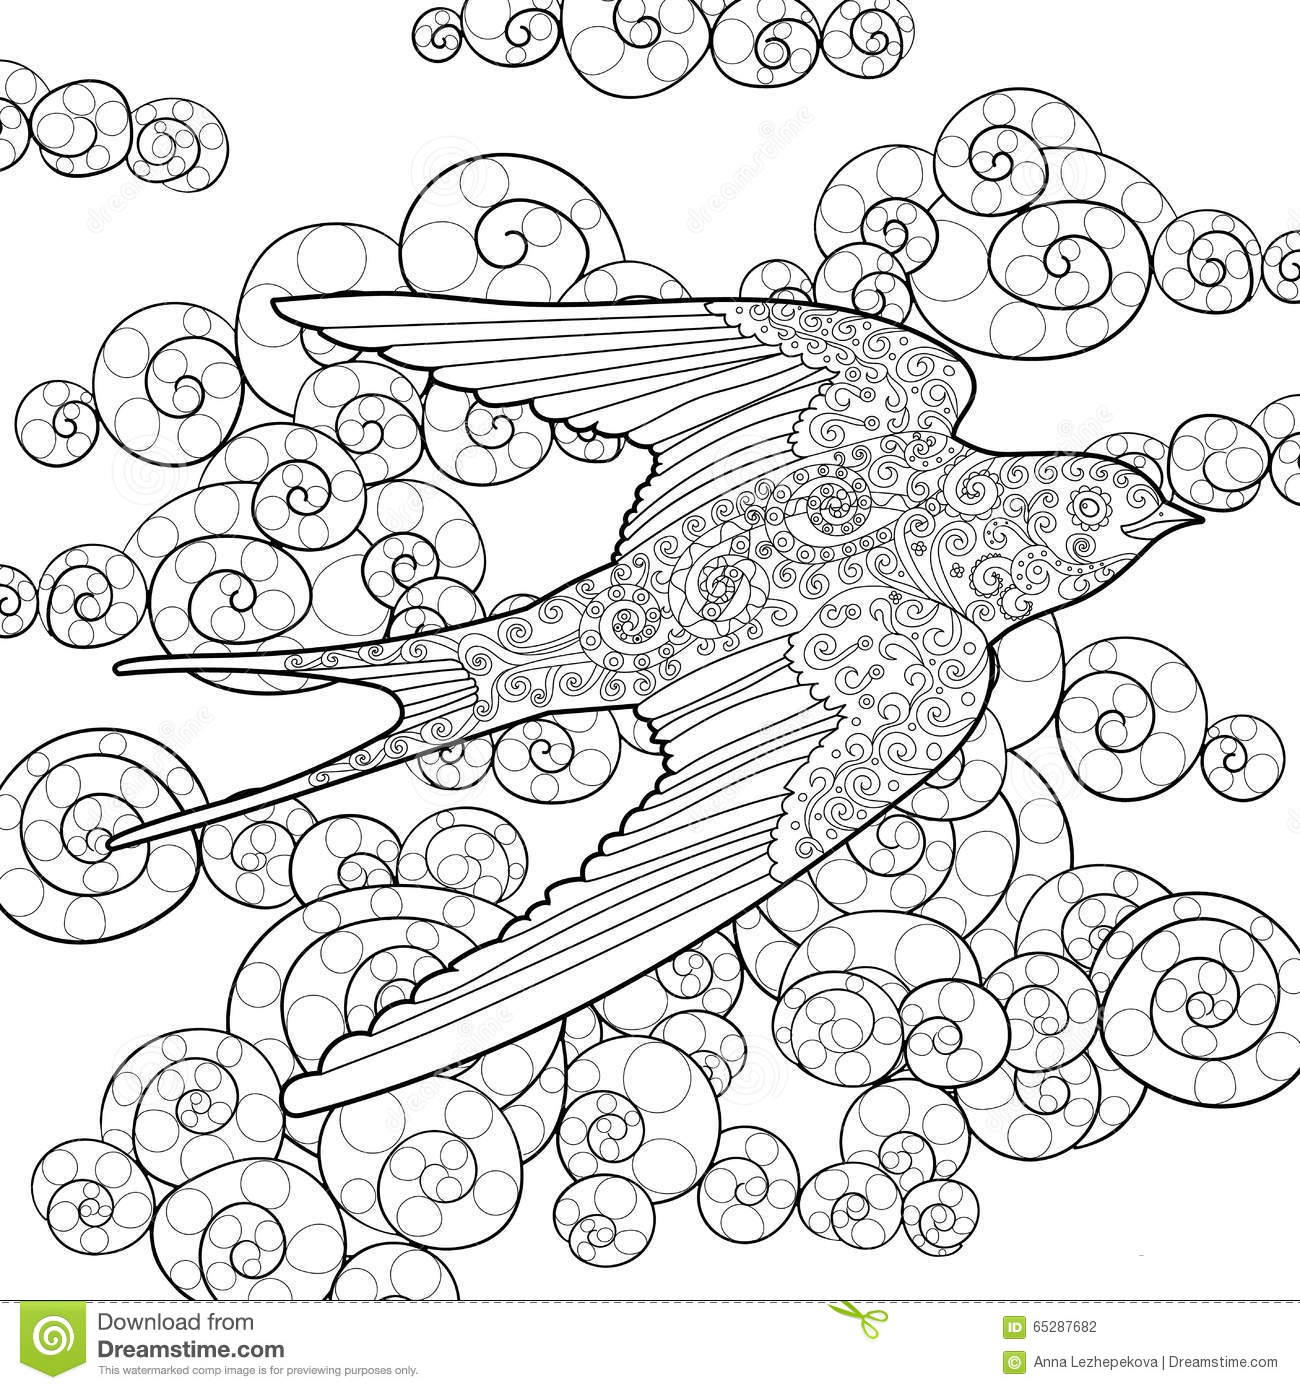 Drawn Bird Coloring Page